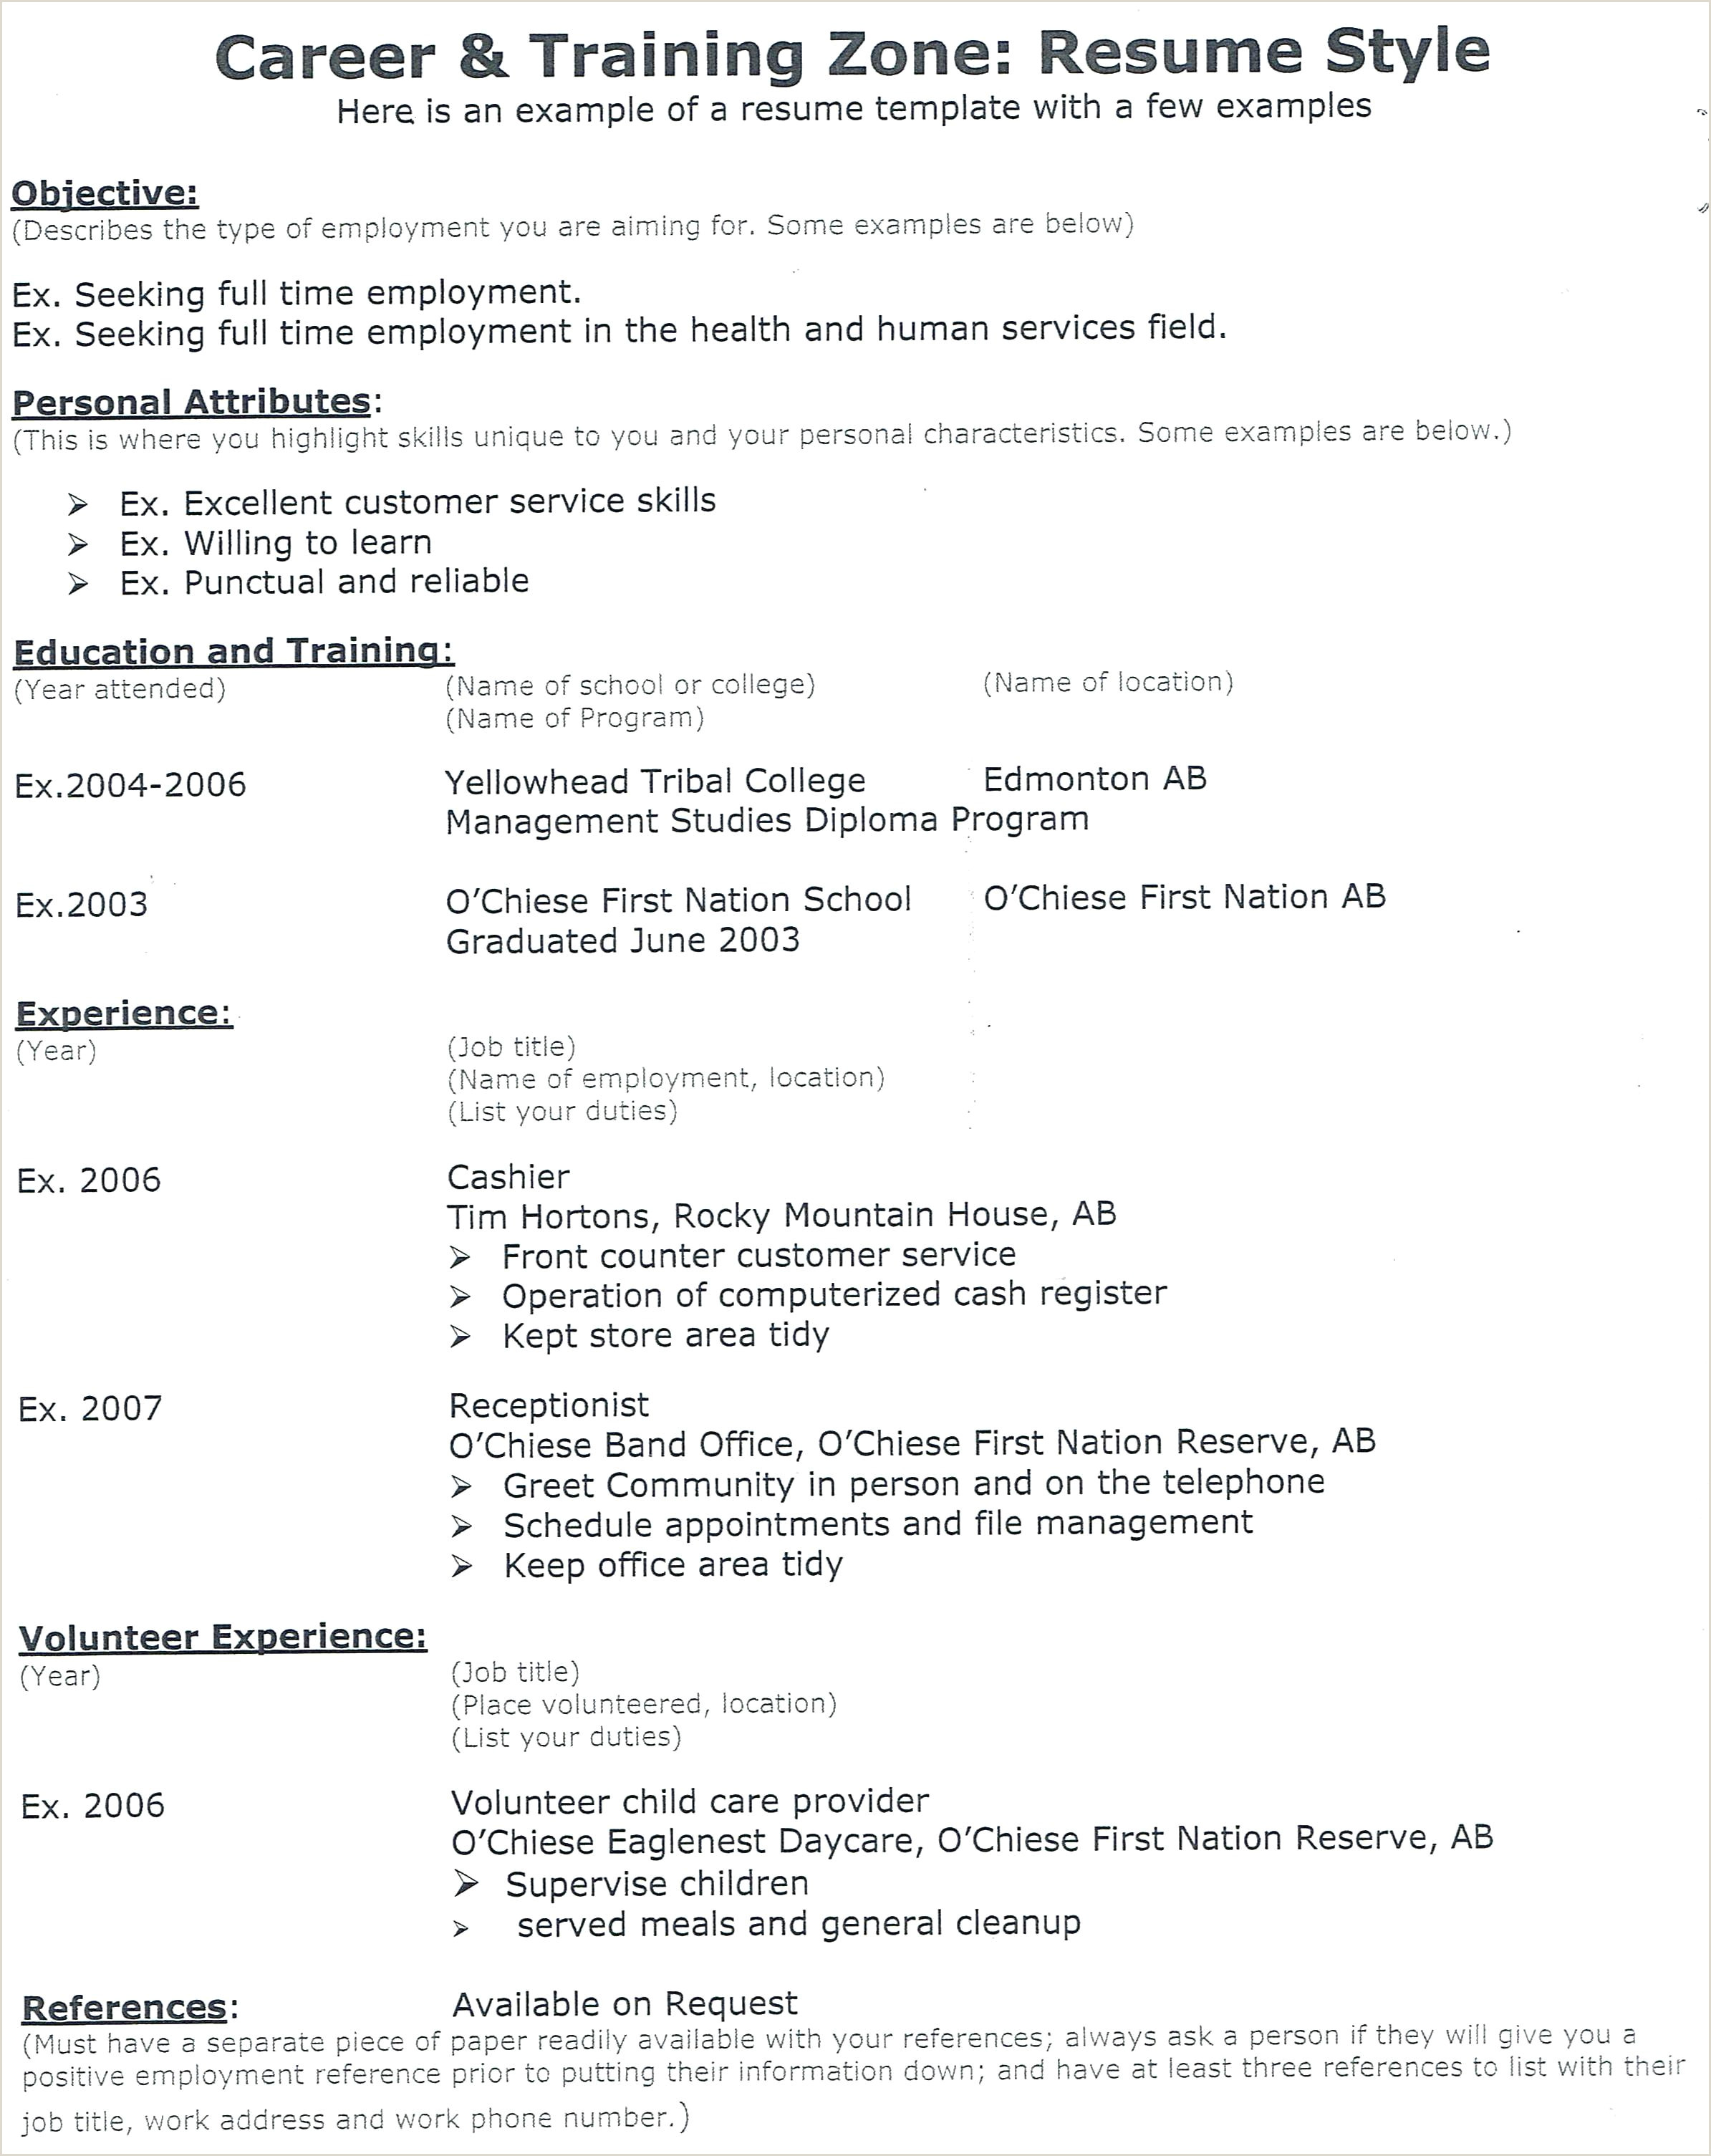 Other Names for Cashier On Resume 10 Other Names for Cashier On Resume